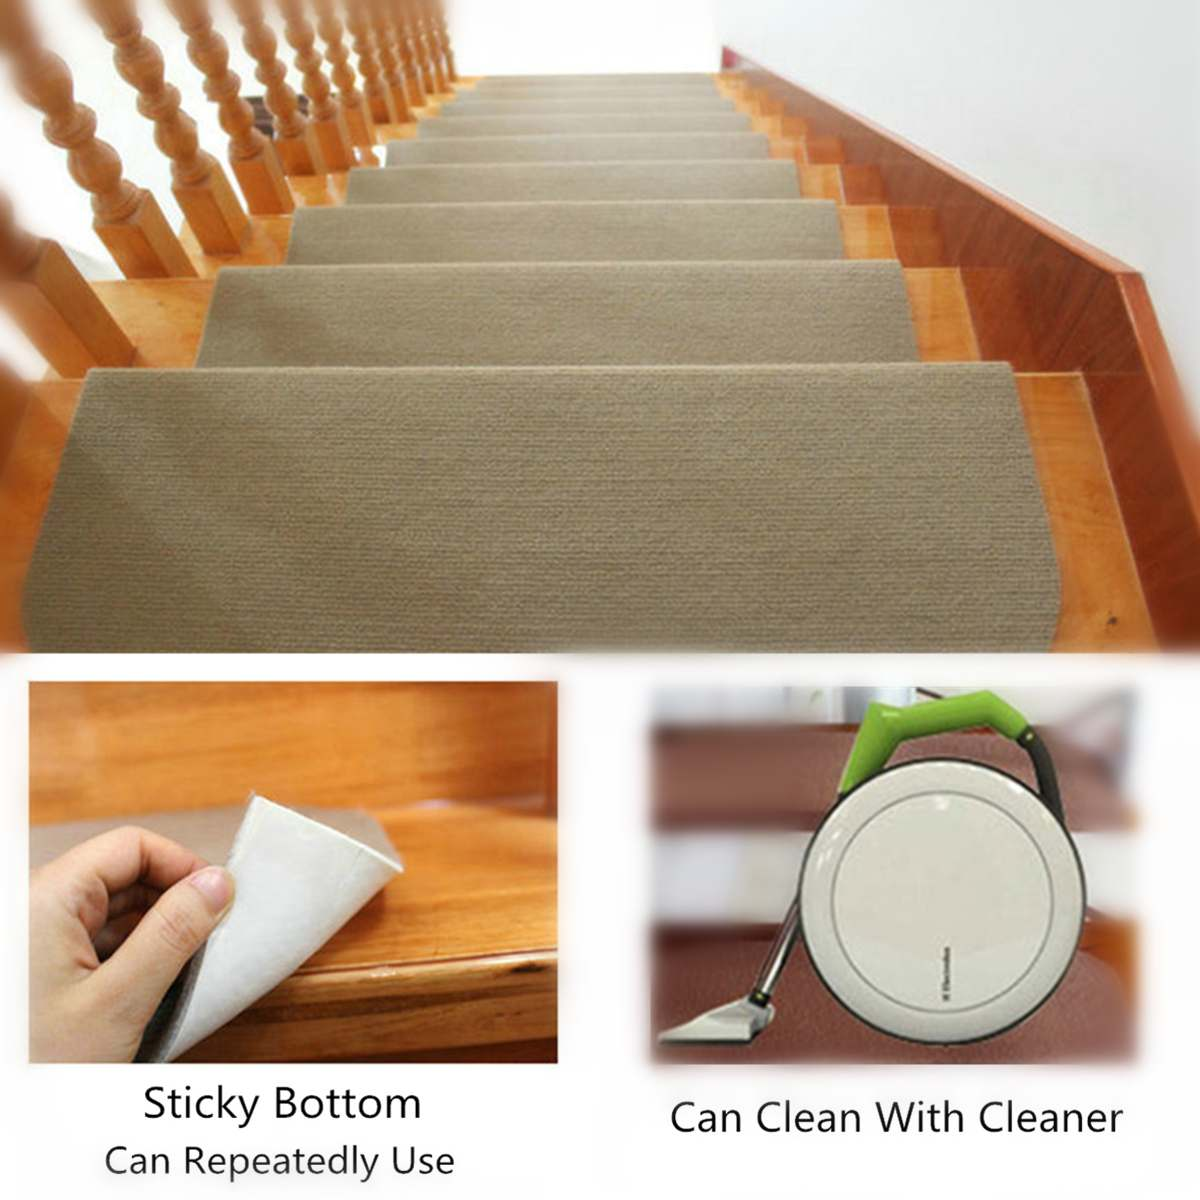 14pcs 20x45cm Brown/Beige Anti-slip Stair Pads Carpet Mat Sticky Bottom Repeatedly-use